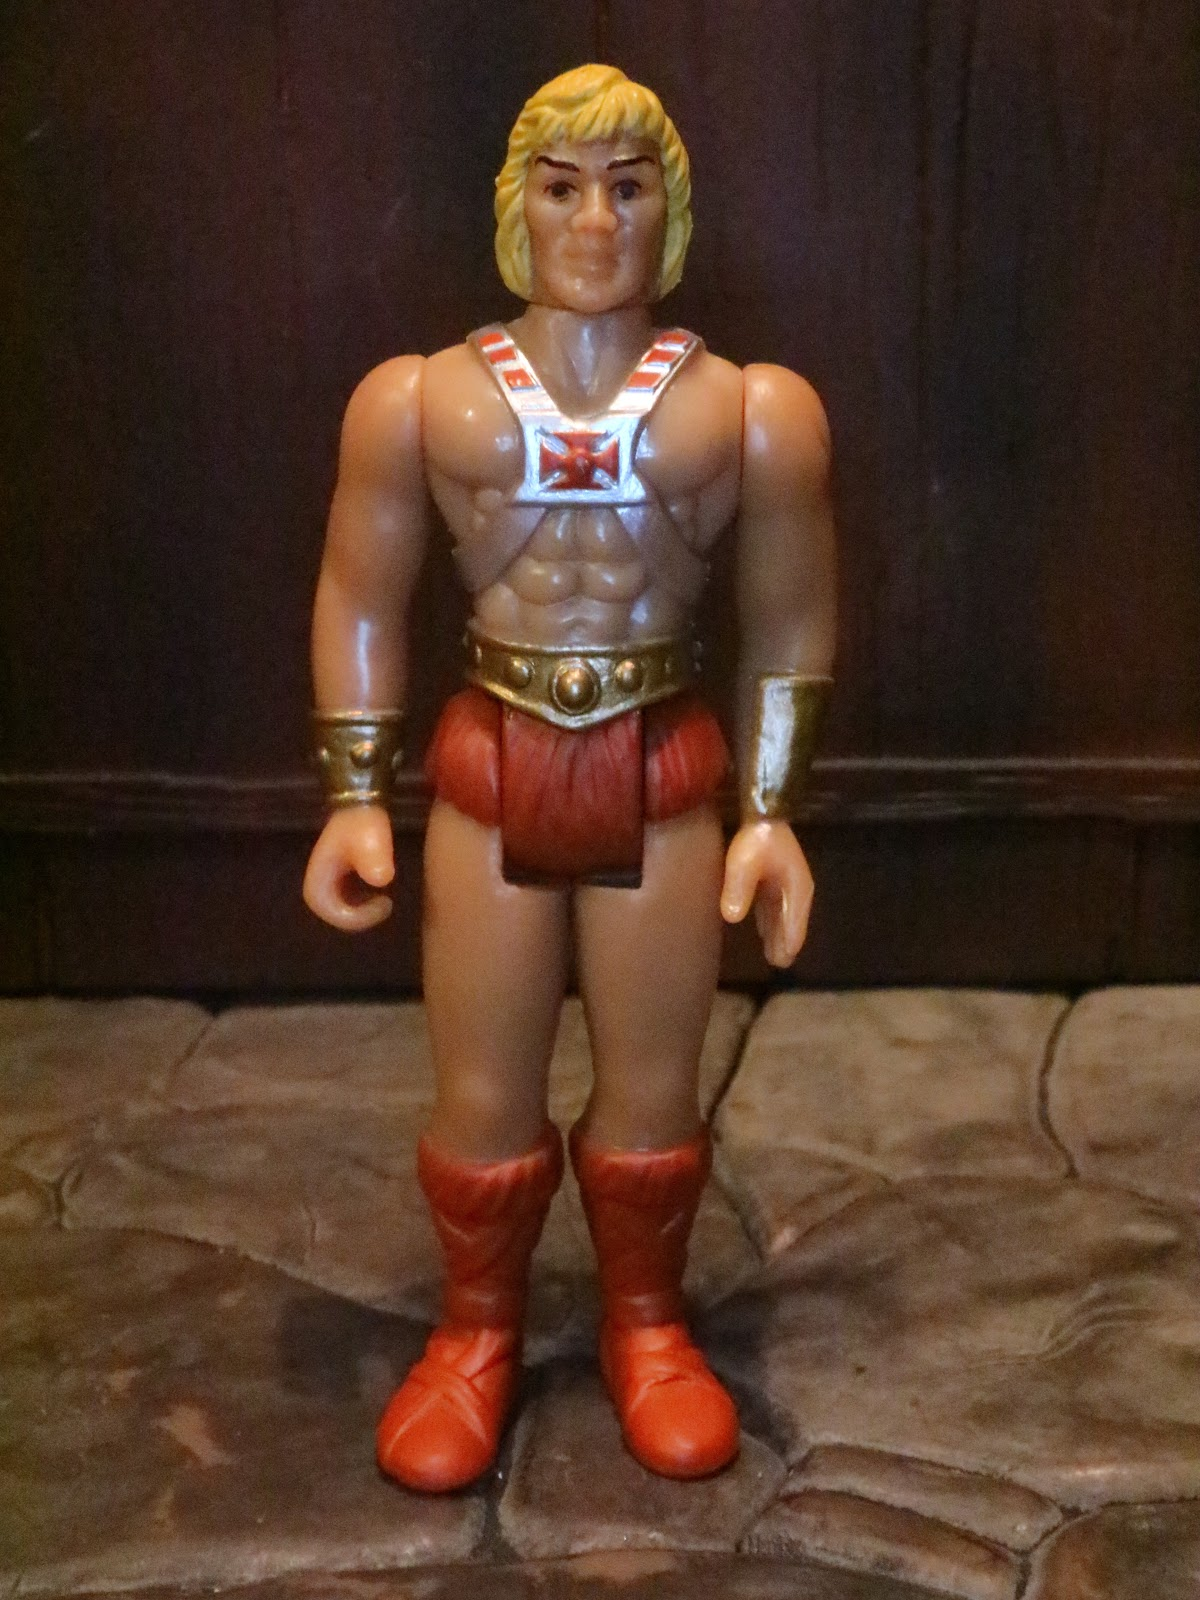 Super 7 Reaction Masters of the Universe He-Man /& Battle Cat figurine